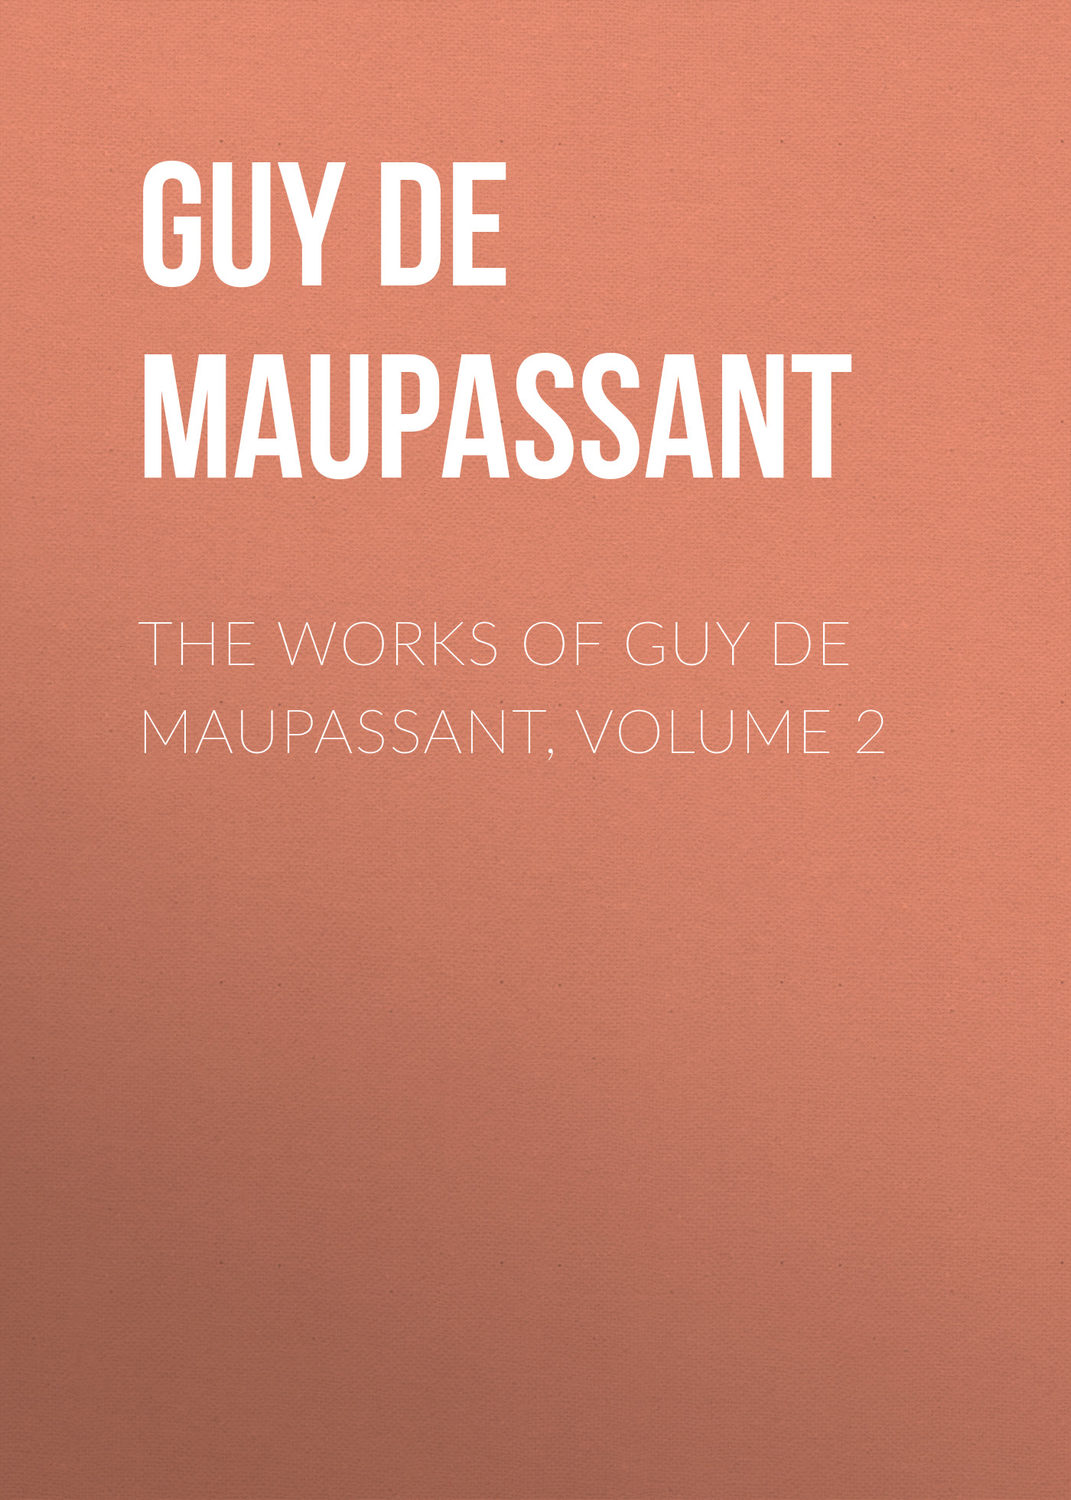 role of women in maupassants works Follow this and additional works at:https: guy de maupassant becomes a female role model for maupassant's vision and understanding of women.